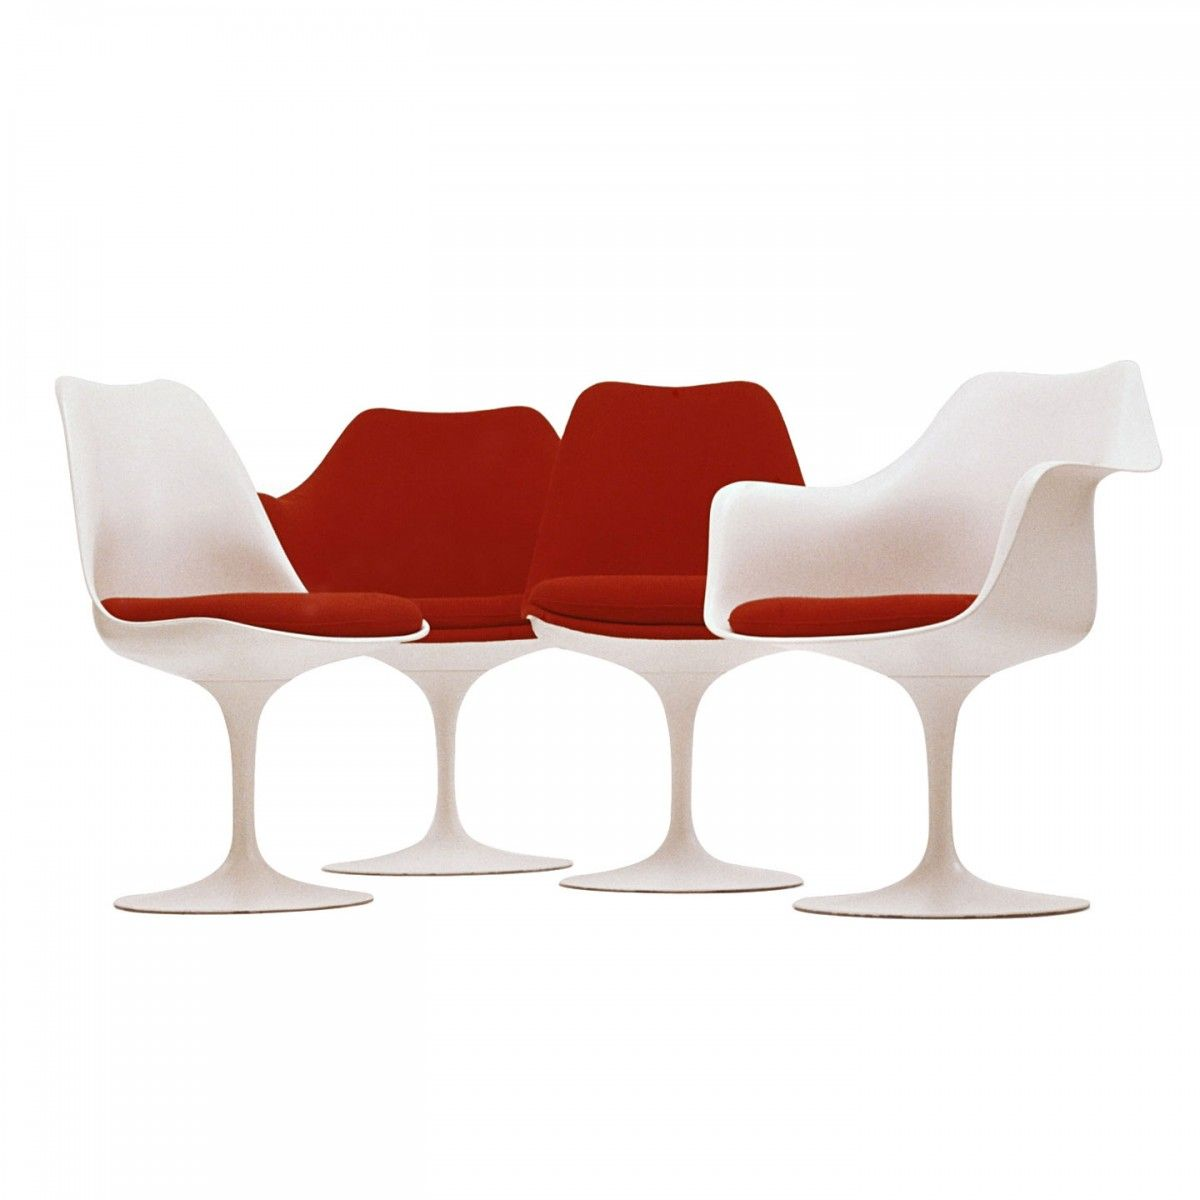 Tulip Chair By Eero Saarinen For Knoll International